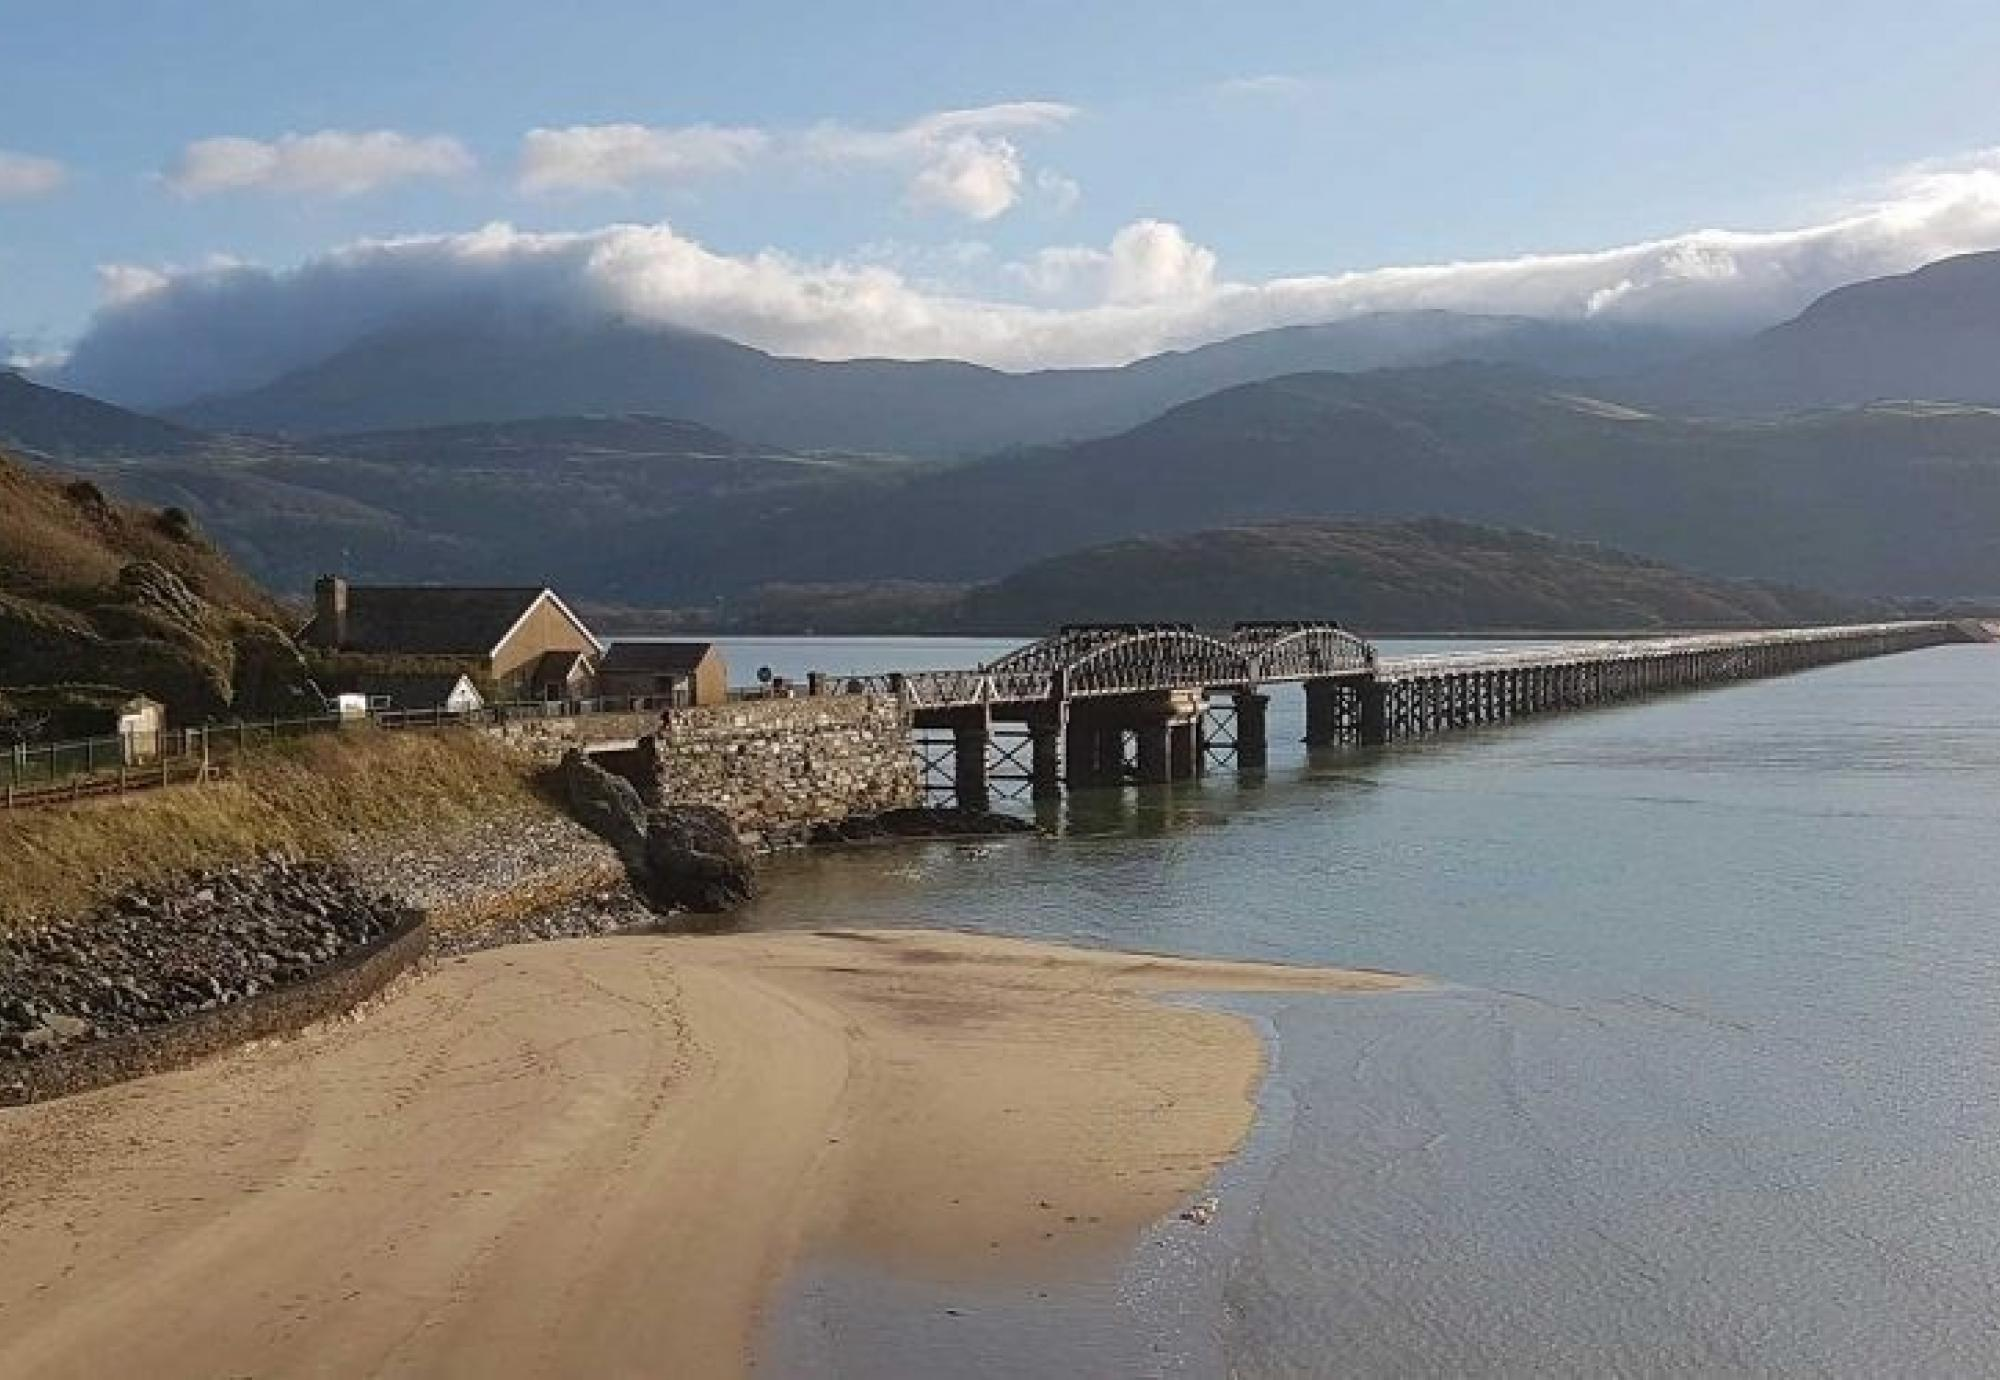 Momentous refurbishment underway for Barmouth Viaduct